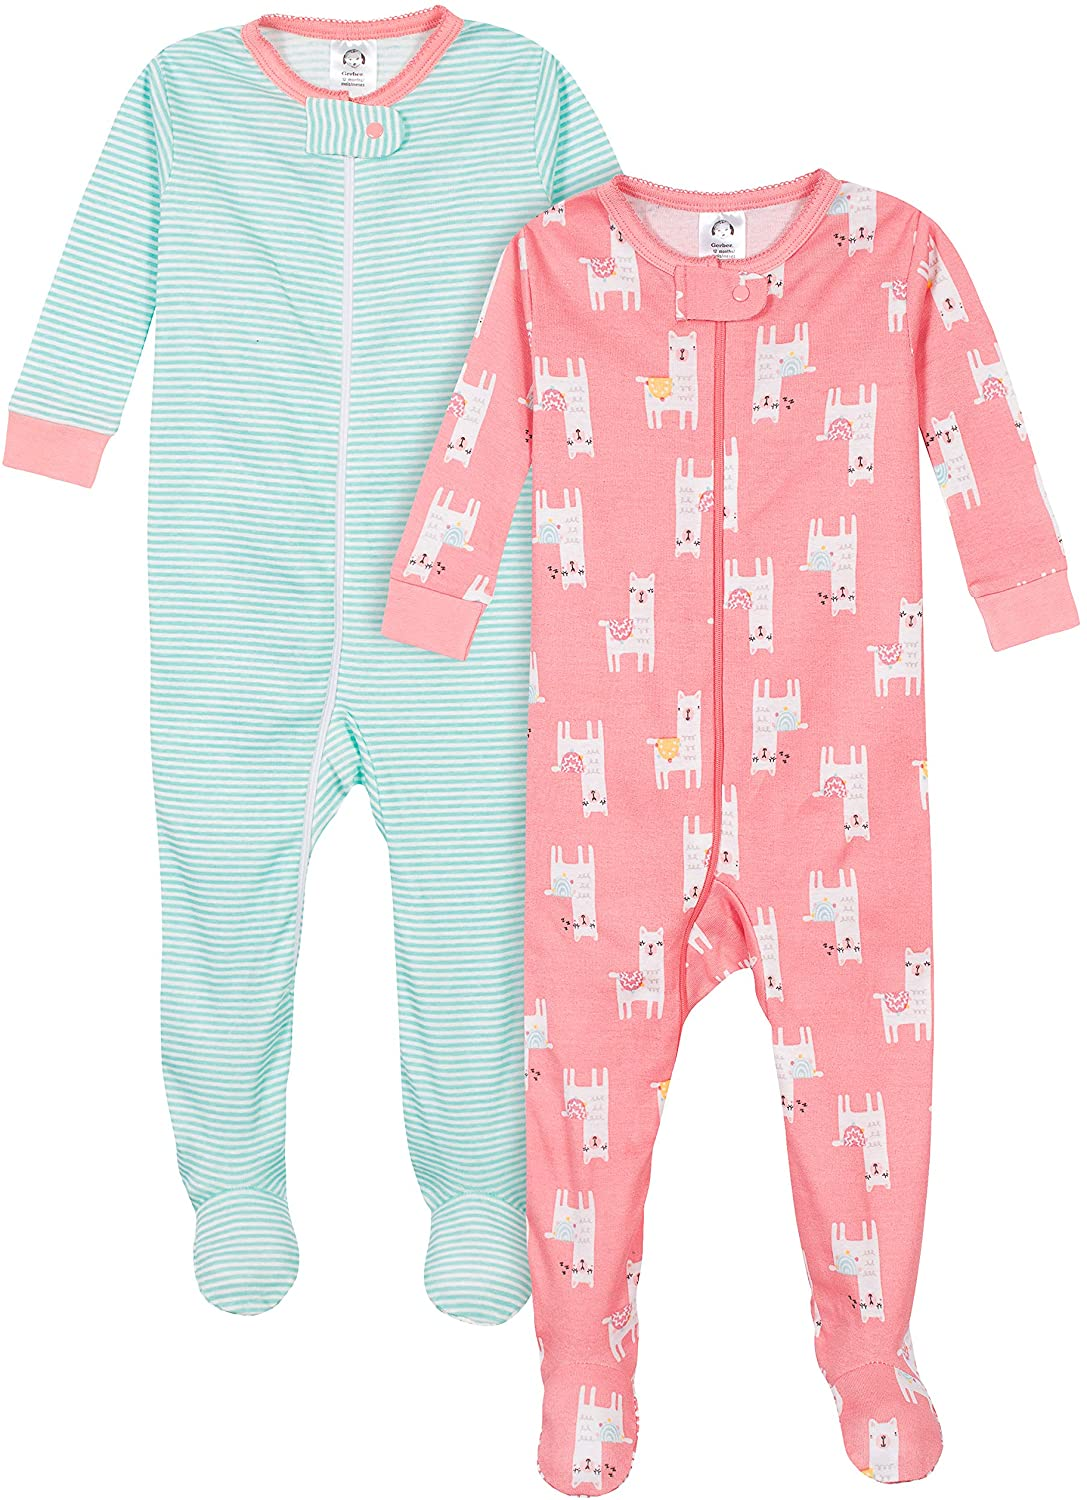 Gerber Baby-Girls Organic 2 Pack Cotton Footed Unionsuit Sleepers